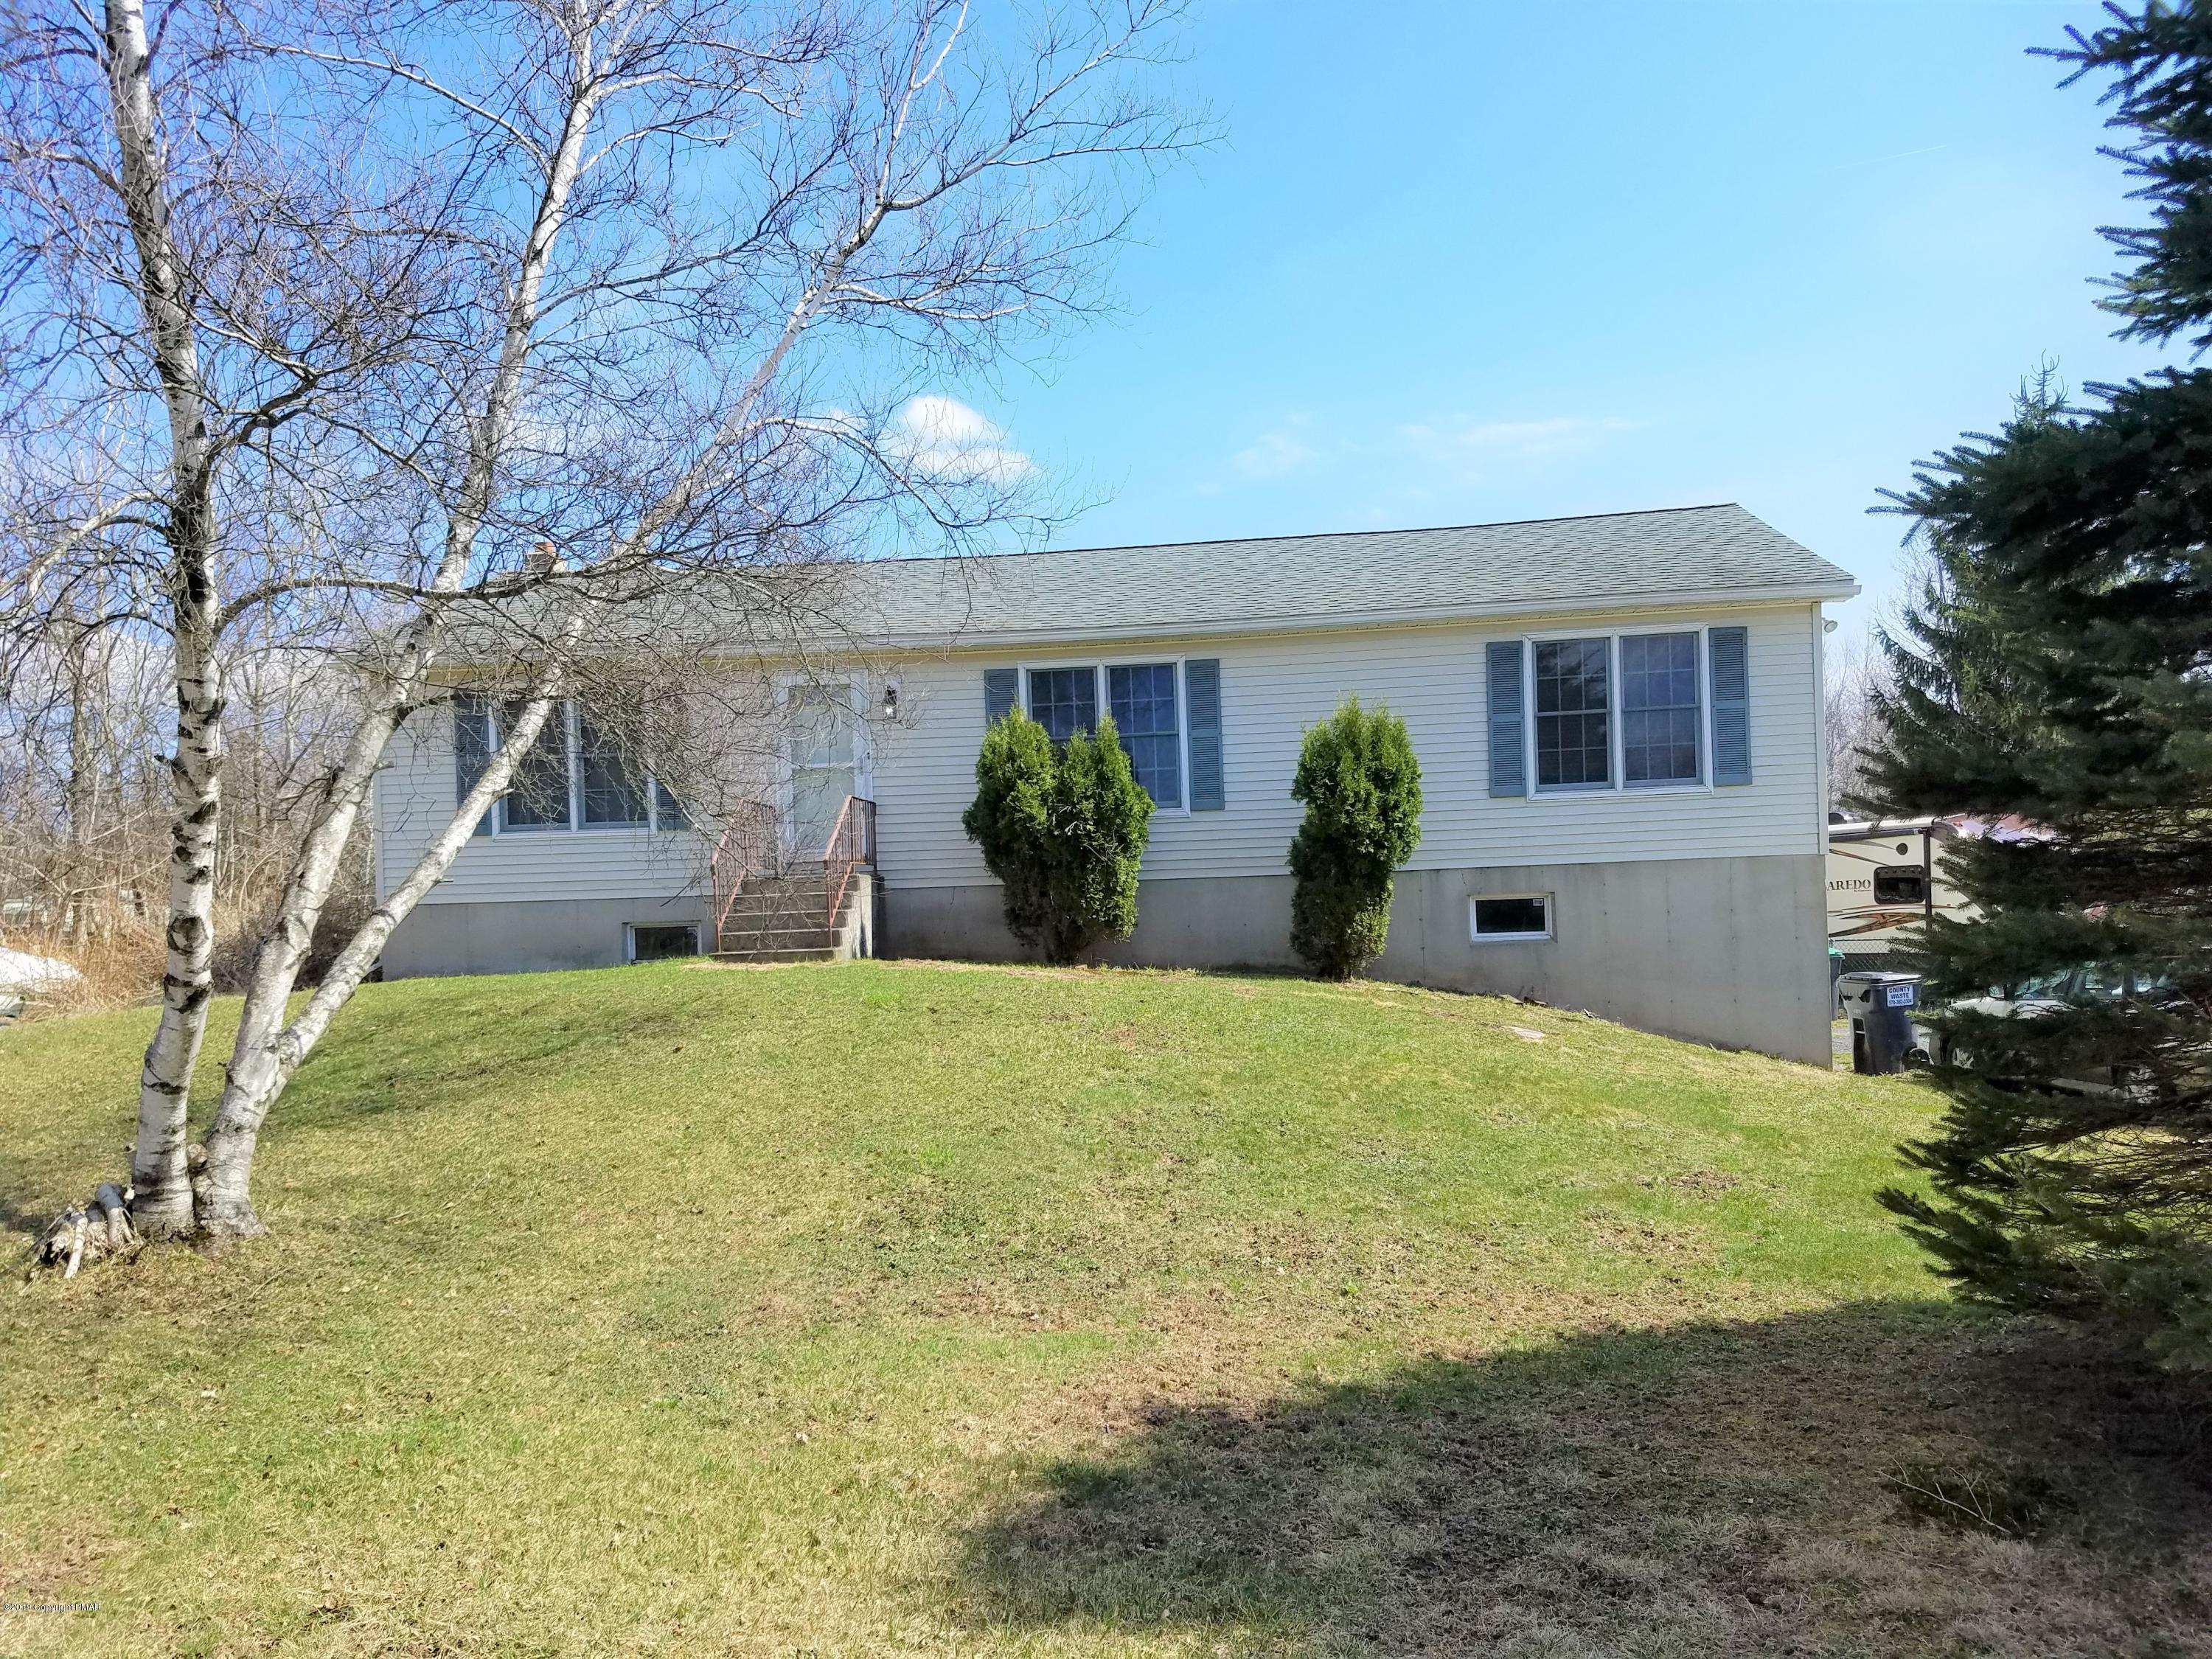 212 Candle Dr, Blakeslee, PA 18610